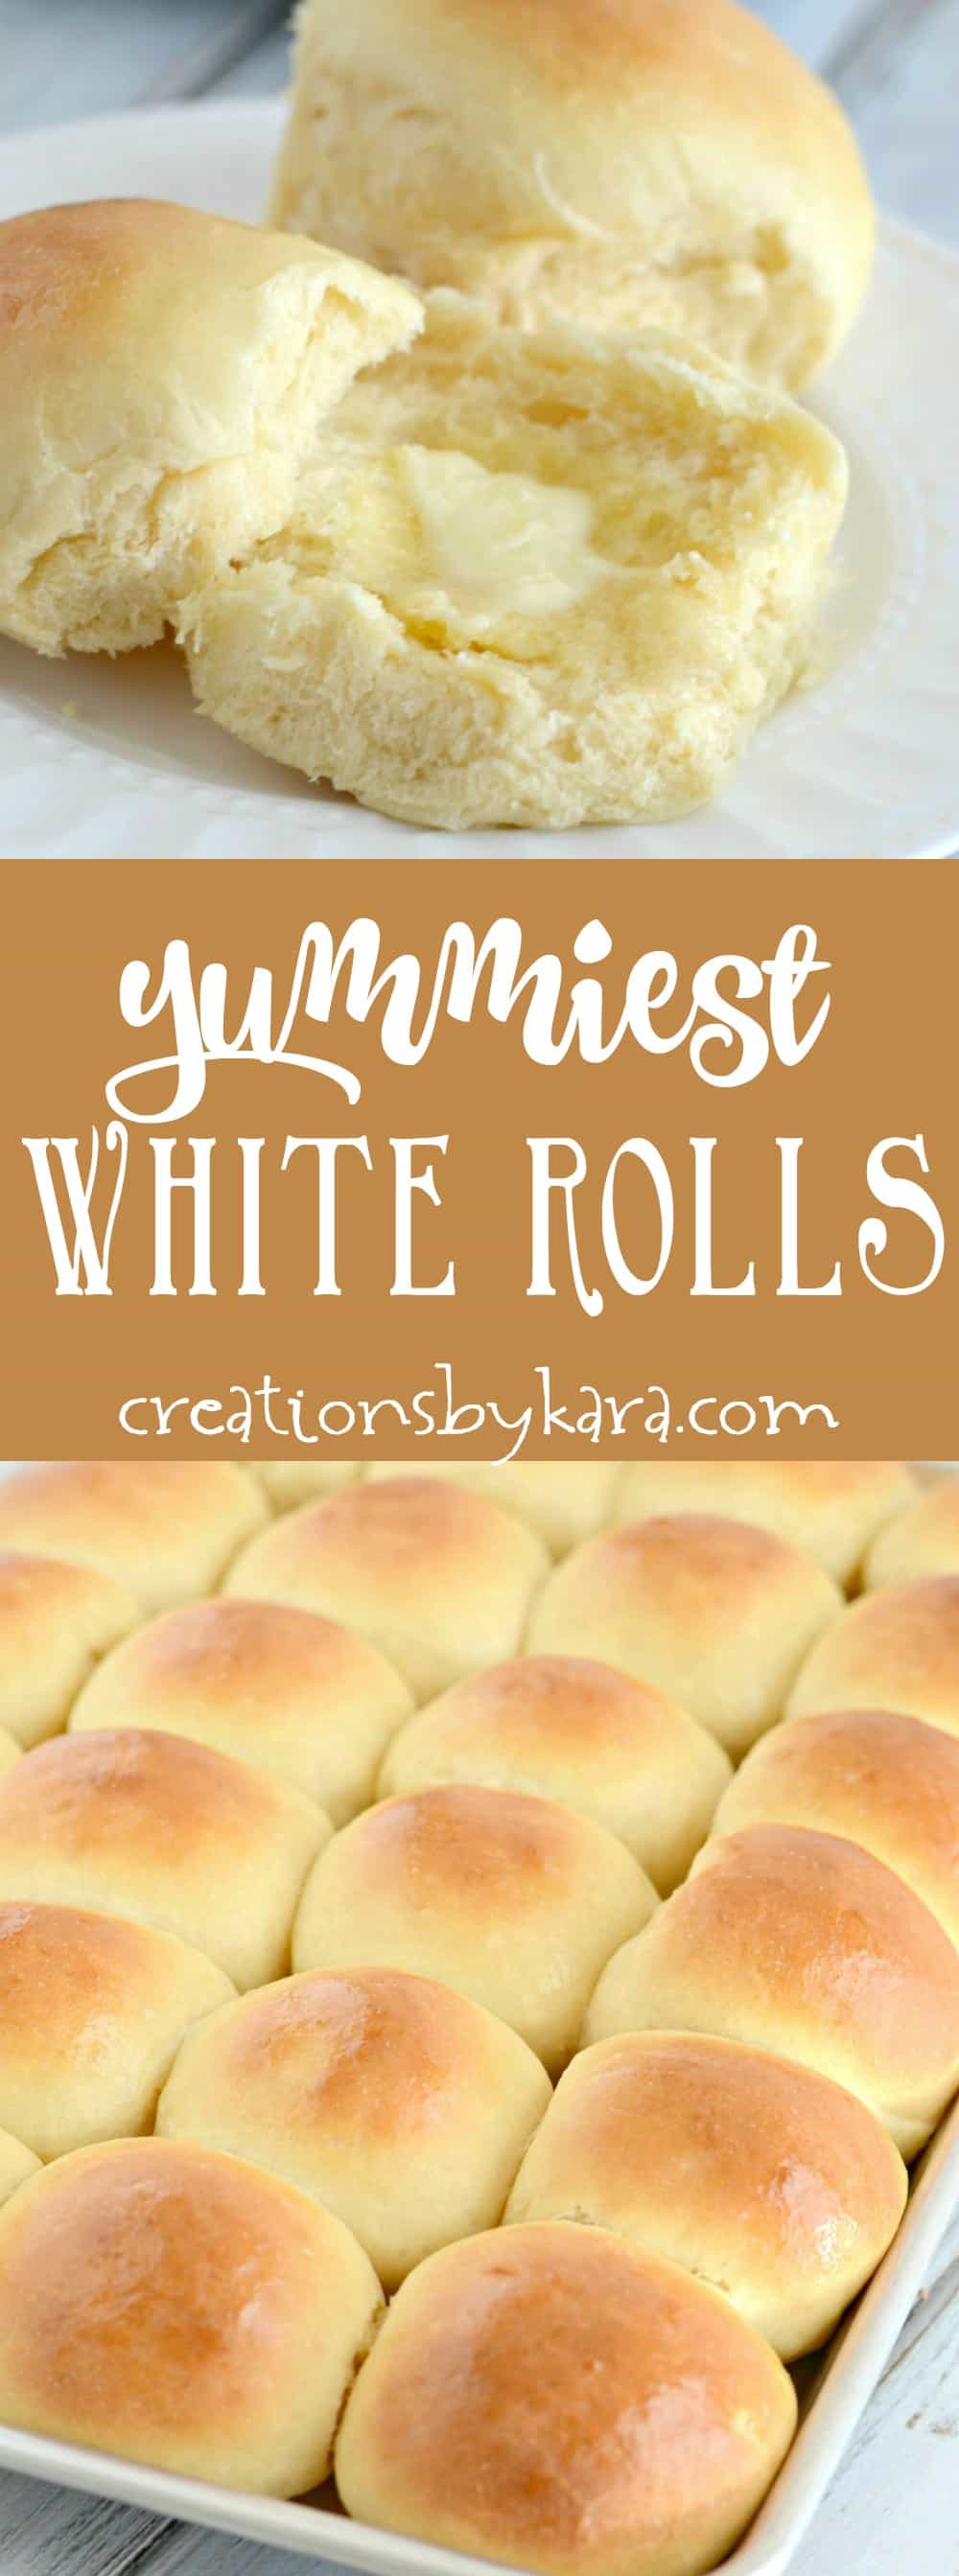 This has been a favorite dinner roll recipe for years! You will get rave reviews if you serve these yummy white rolls! The best soft and flavorful roll recipe. #dinnerrolls #rolls